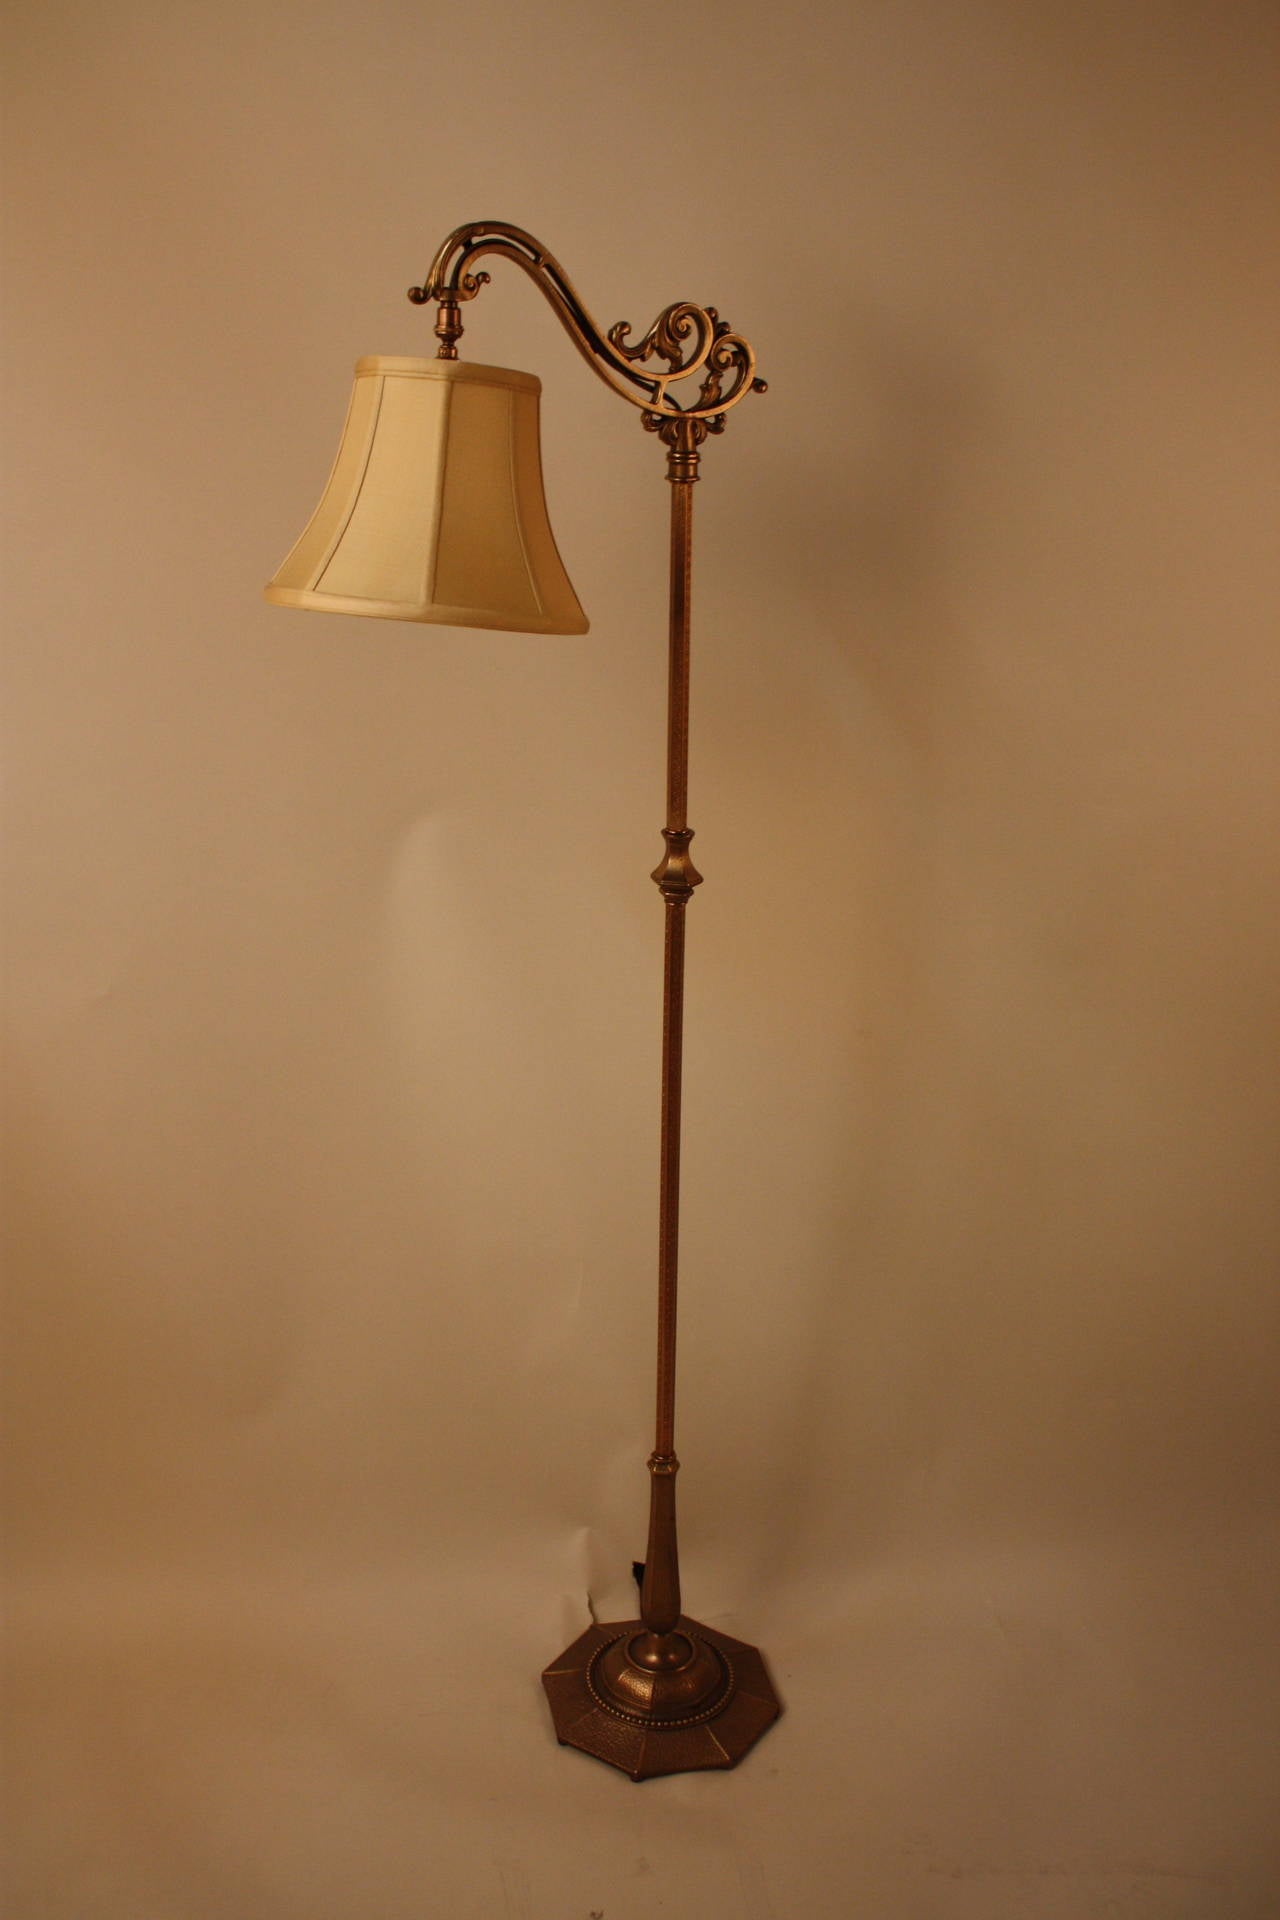 American Floor Lamp By Rembrandt Lamp Company At 1stdibs